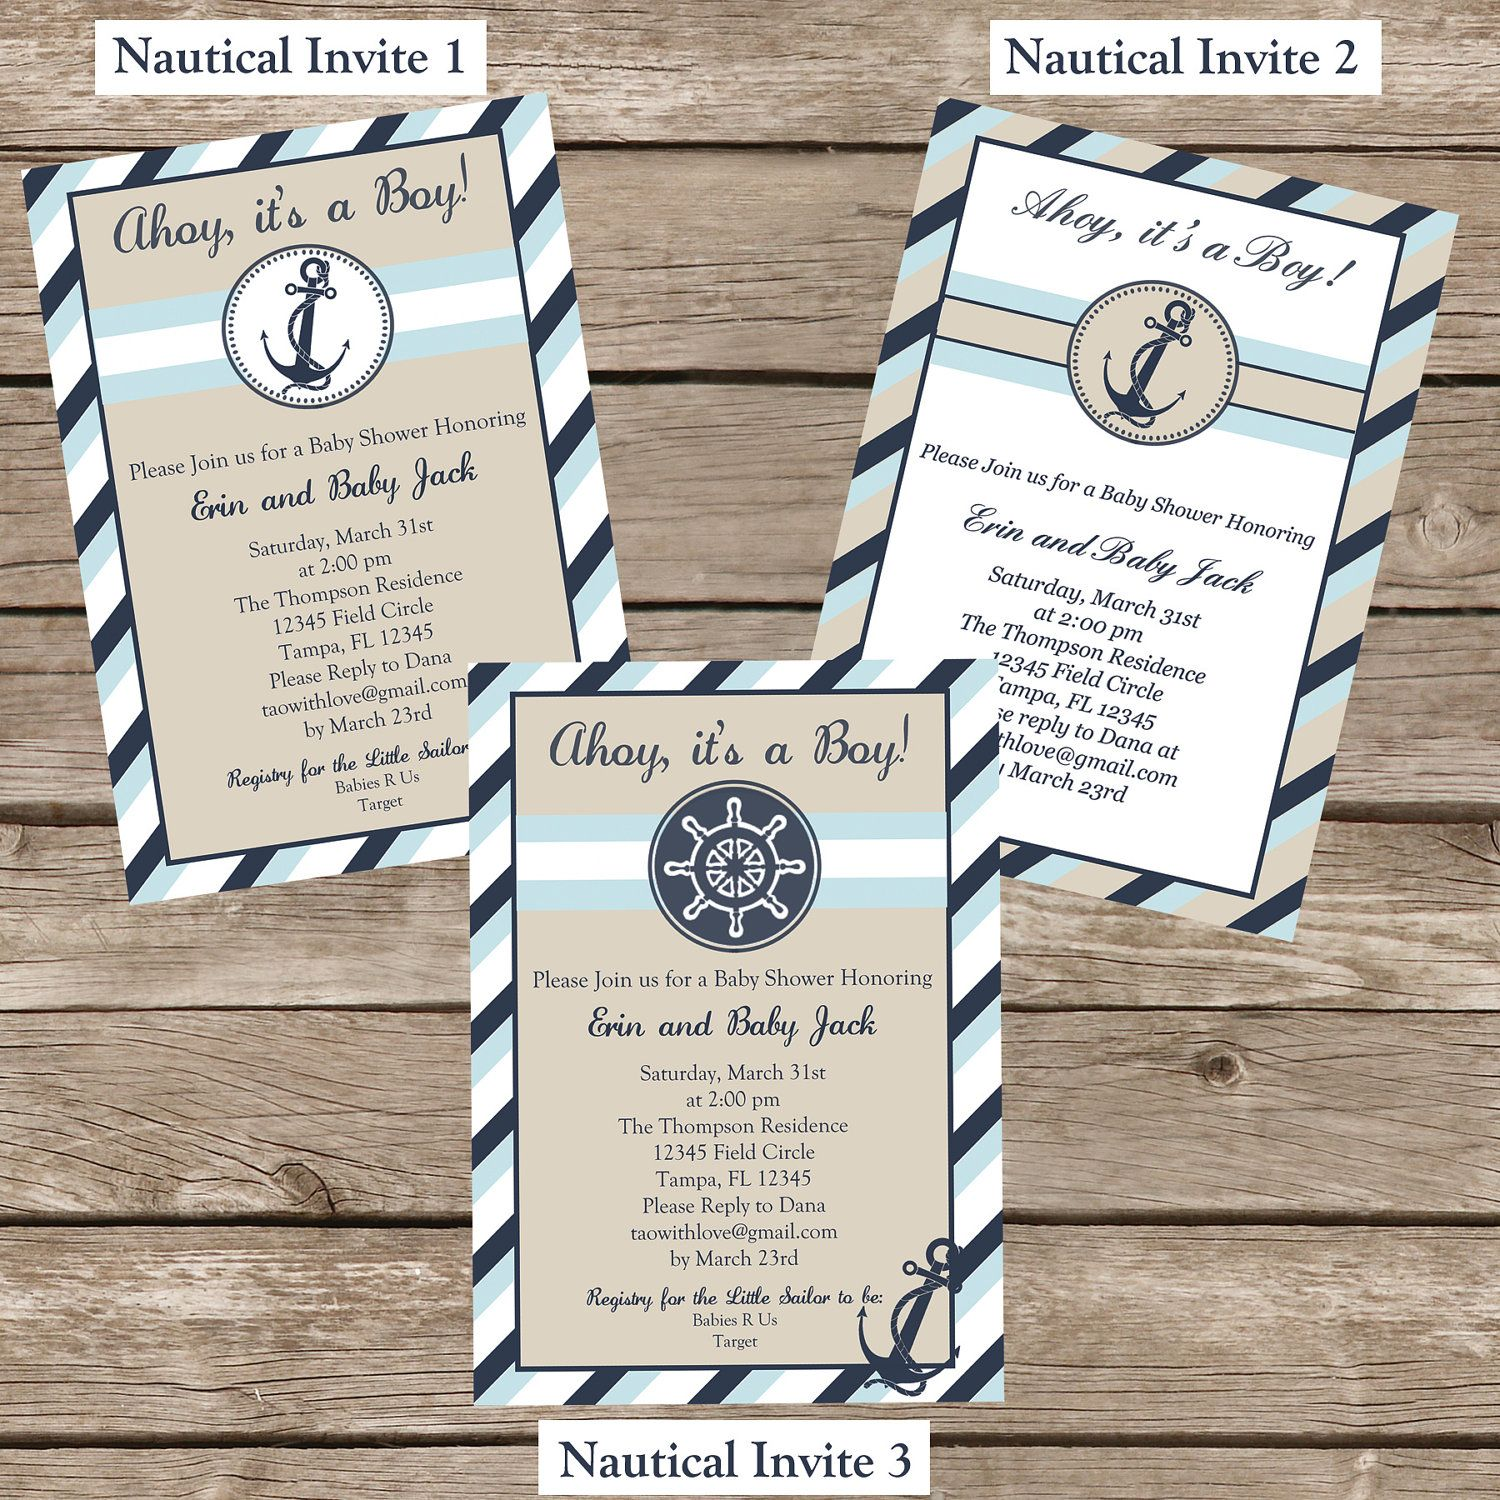 Nautical baby shower invitation printable shower invitations nautical baby shower invitation printable filmwisefo Image collections